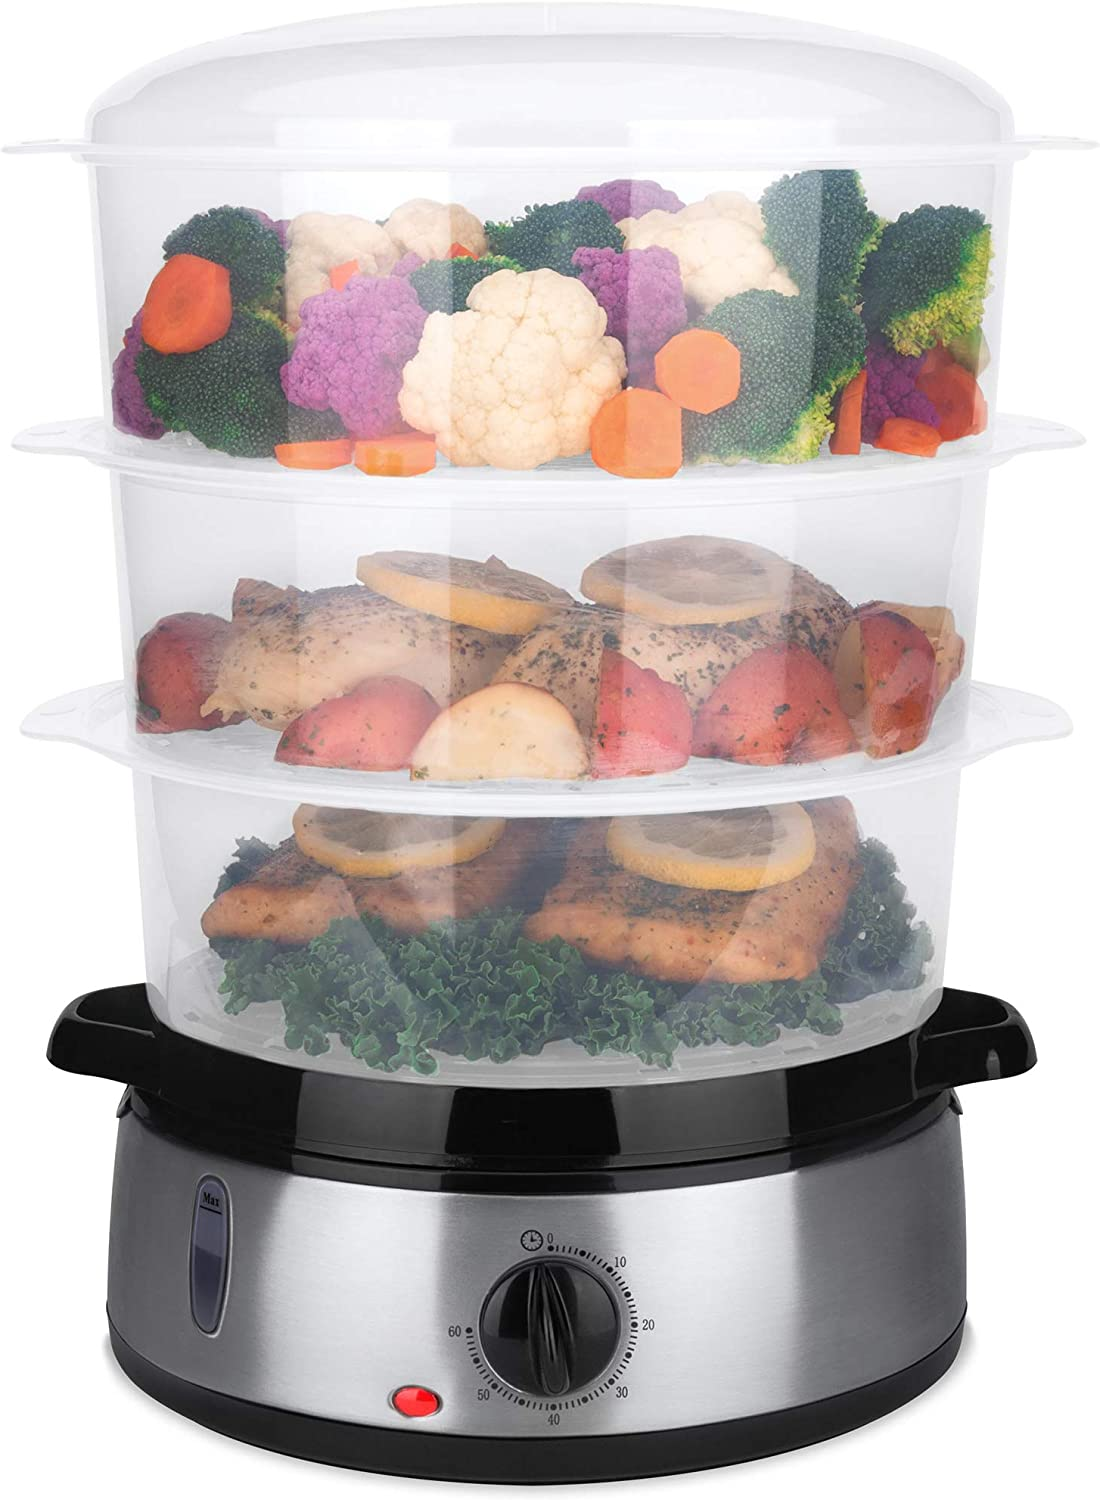 Best Choice Products 9.5qt 800W 3 Tier BPA-Free Electric Food Steamer w/Egg Pockets, Rice Bowl, Timer & Auto Shutoff